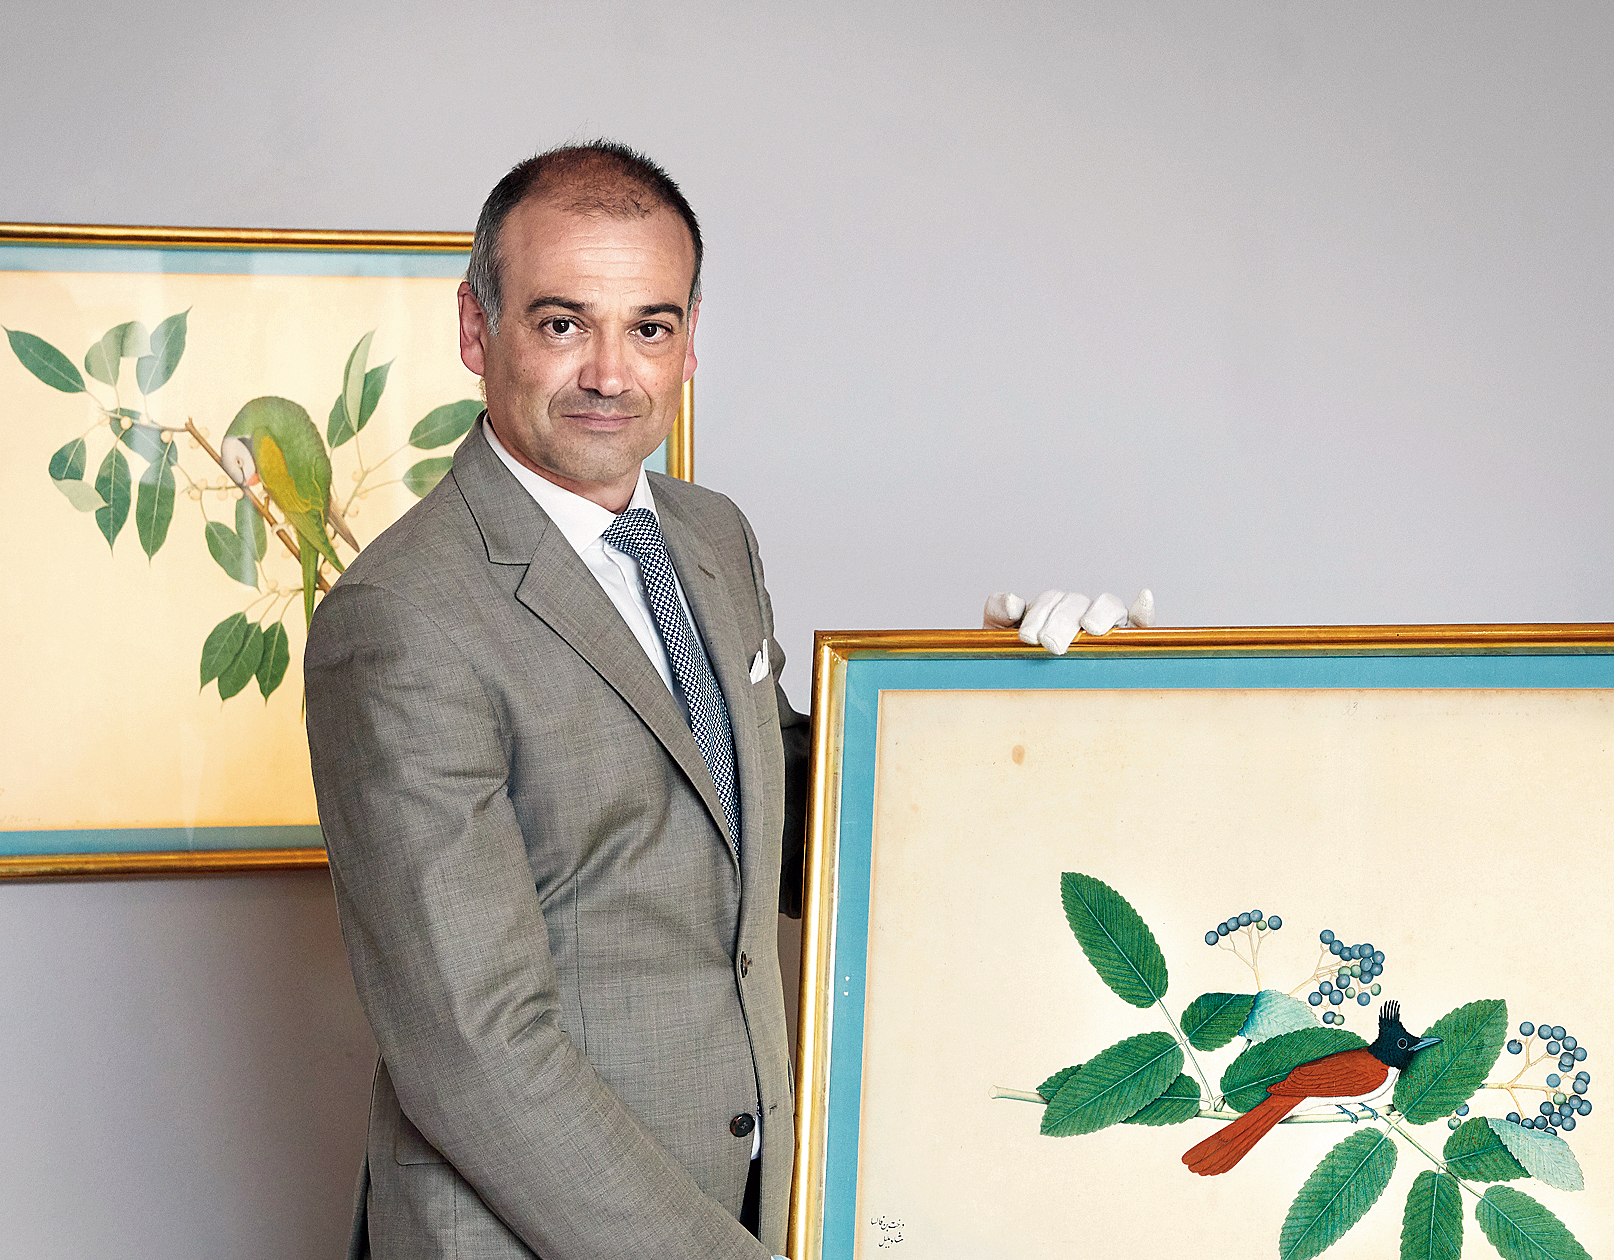 An official shows one of the two paintings during the auction in Stockholm